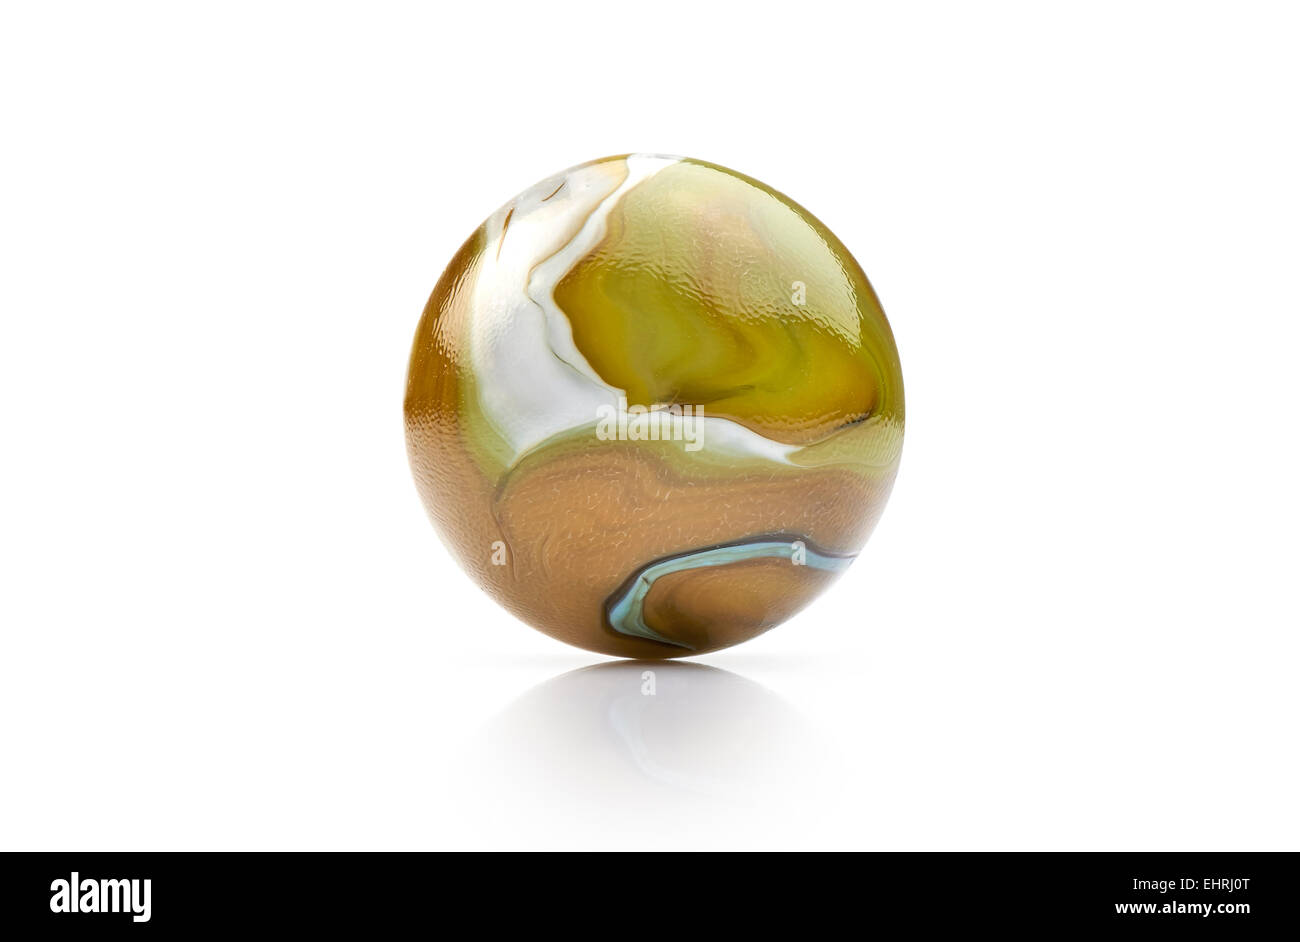 Marbles Glass Isolated Stockfotos & Marbles Glass Isolated Bilder ...